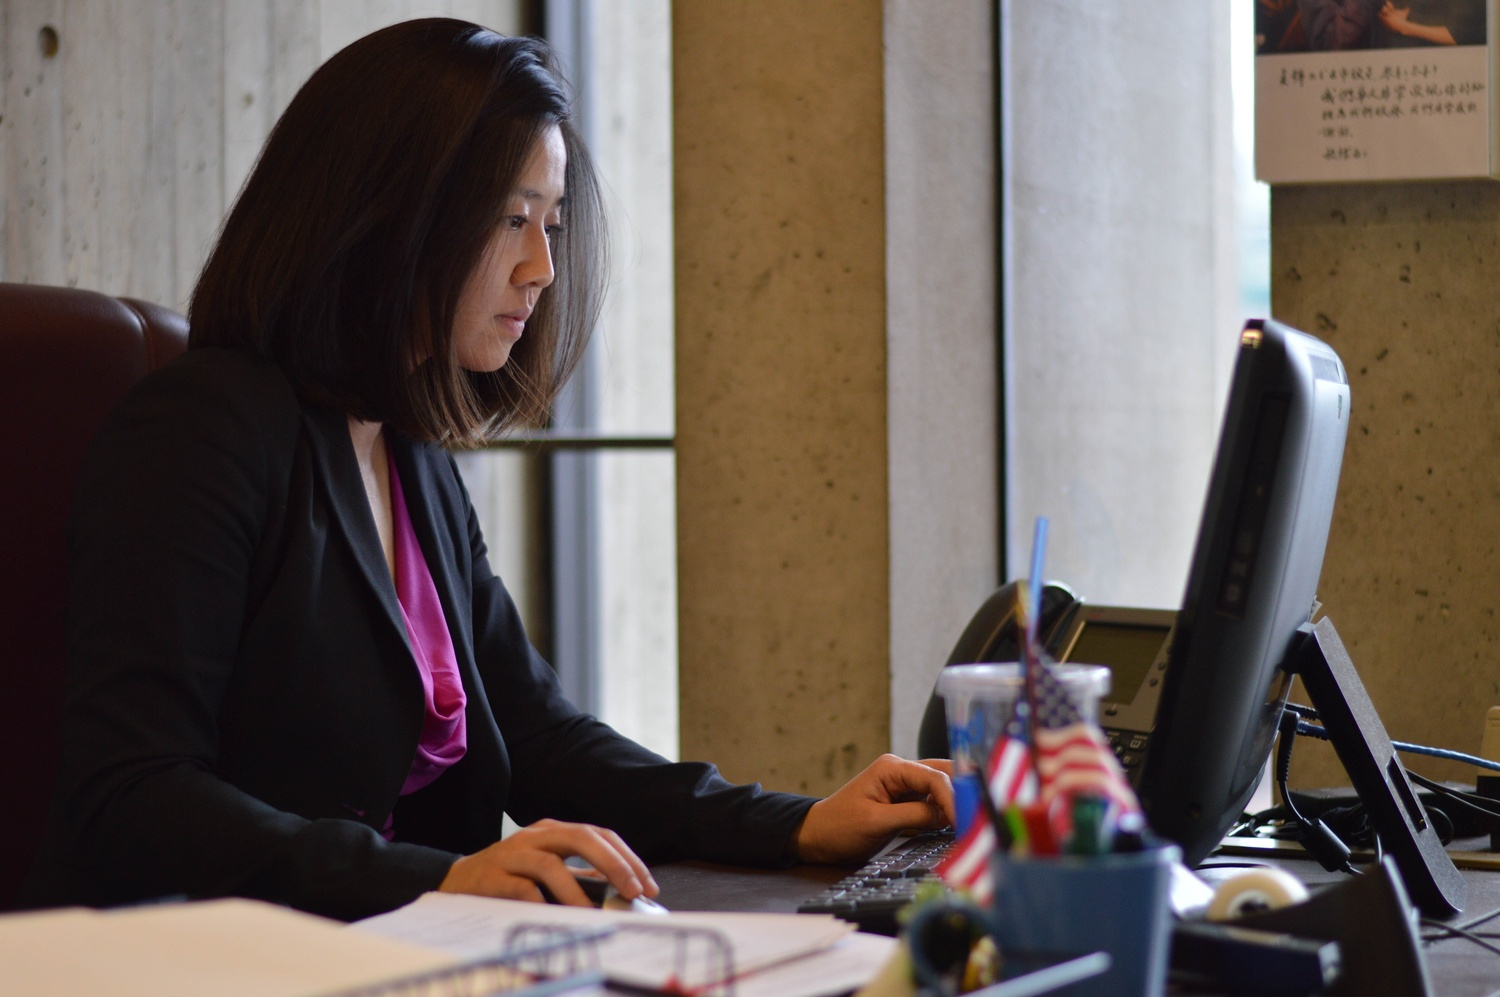 Boston City Councilor Michelle Wu '07, seen here in 2015, announced her candidacy for mayor in September.